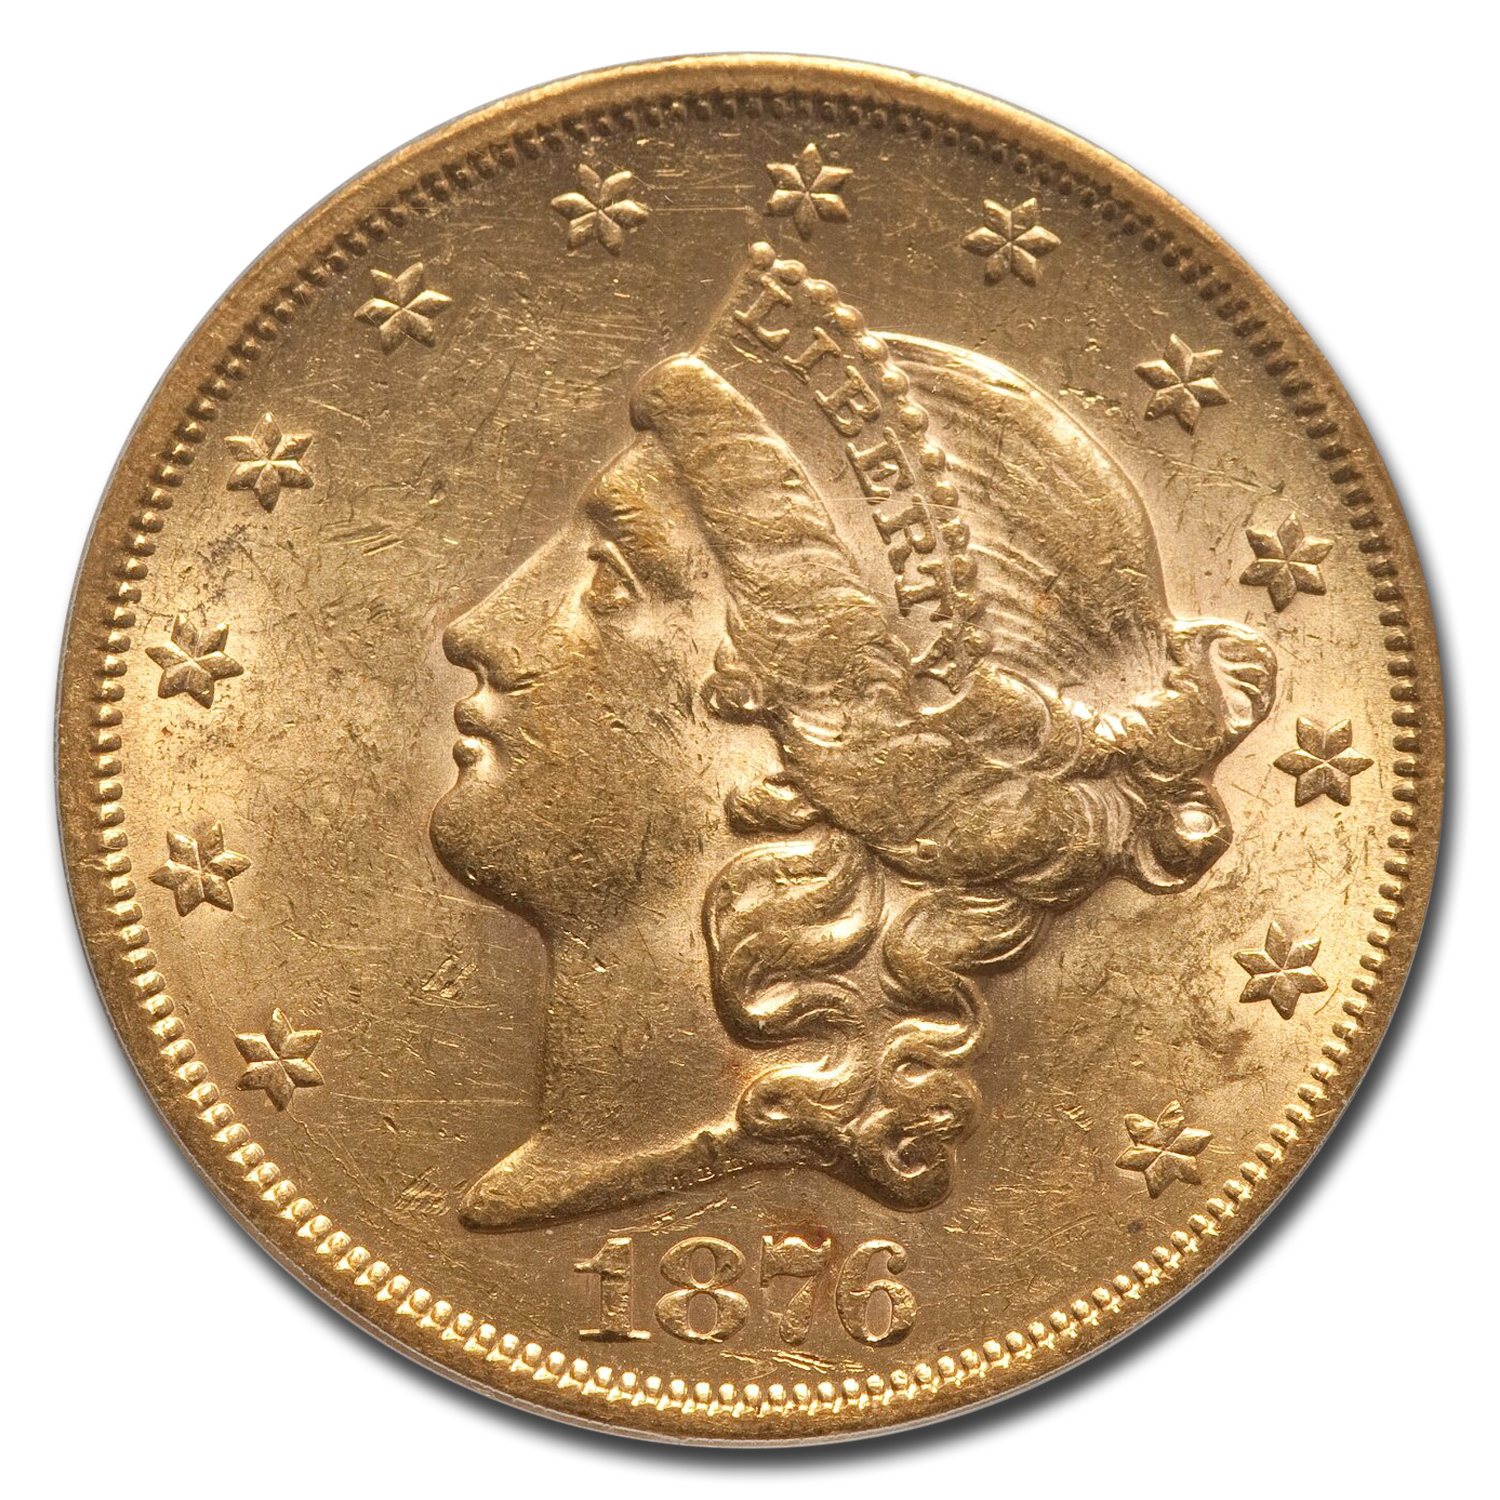 1876-S $20 Gold Liberty Double Eagle - AU-58 PCGS